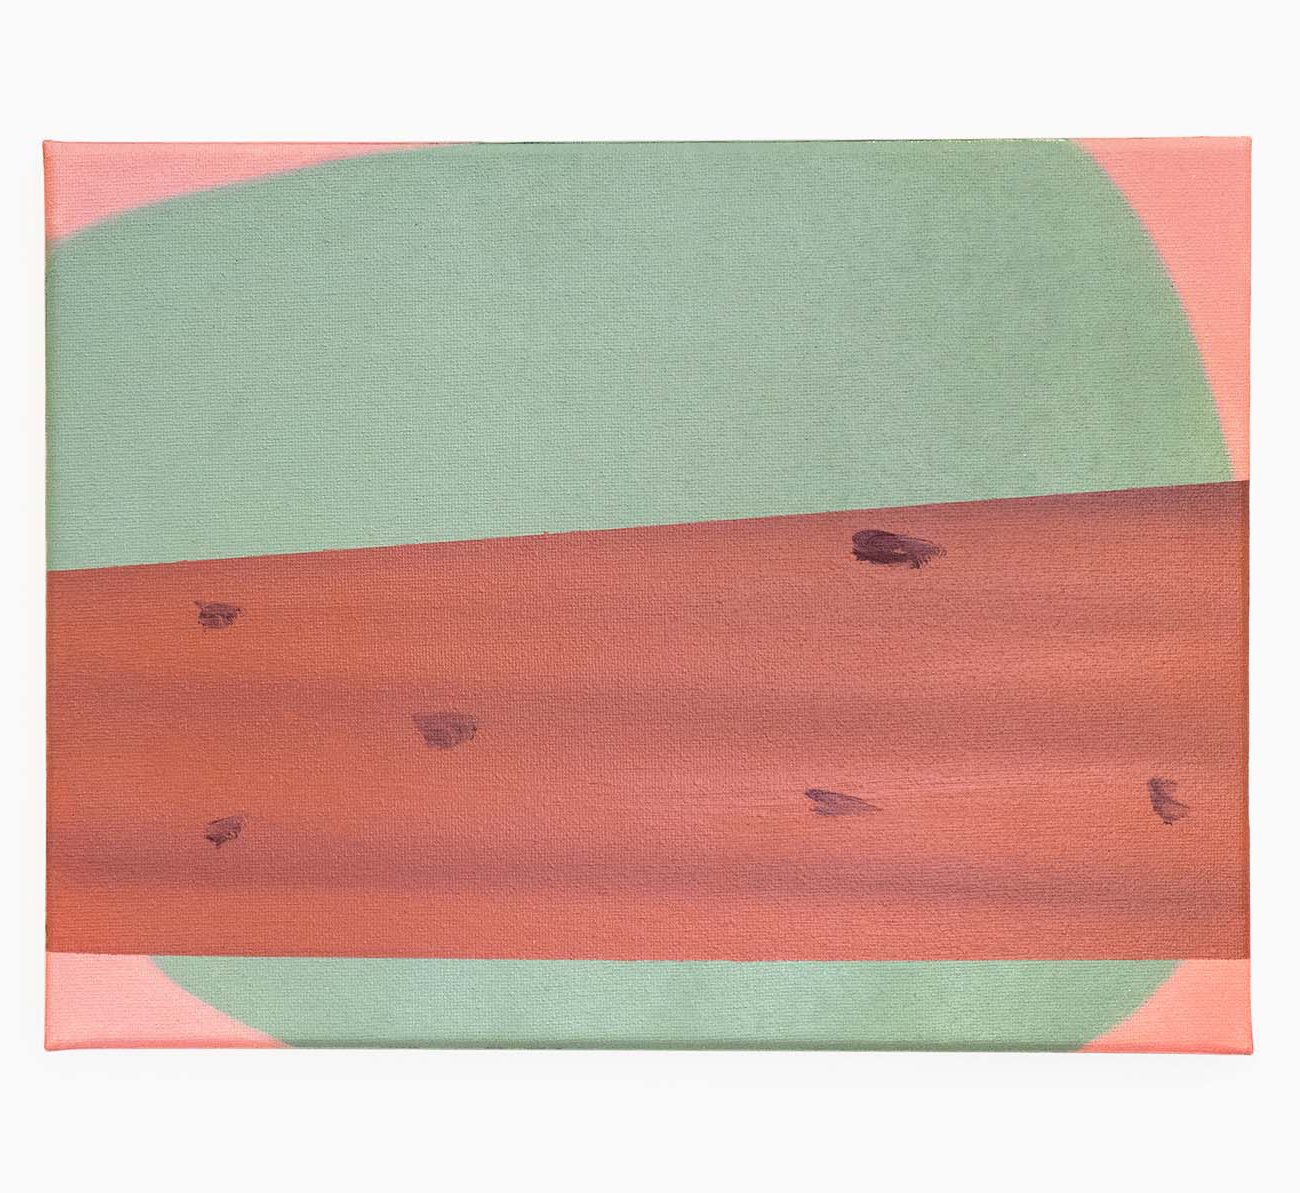 Bark 12 (W) x 9 (H) Inches Oil on Canvas 2020 by 권재나 Jarna Kwon